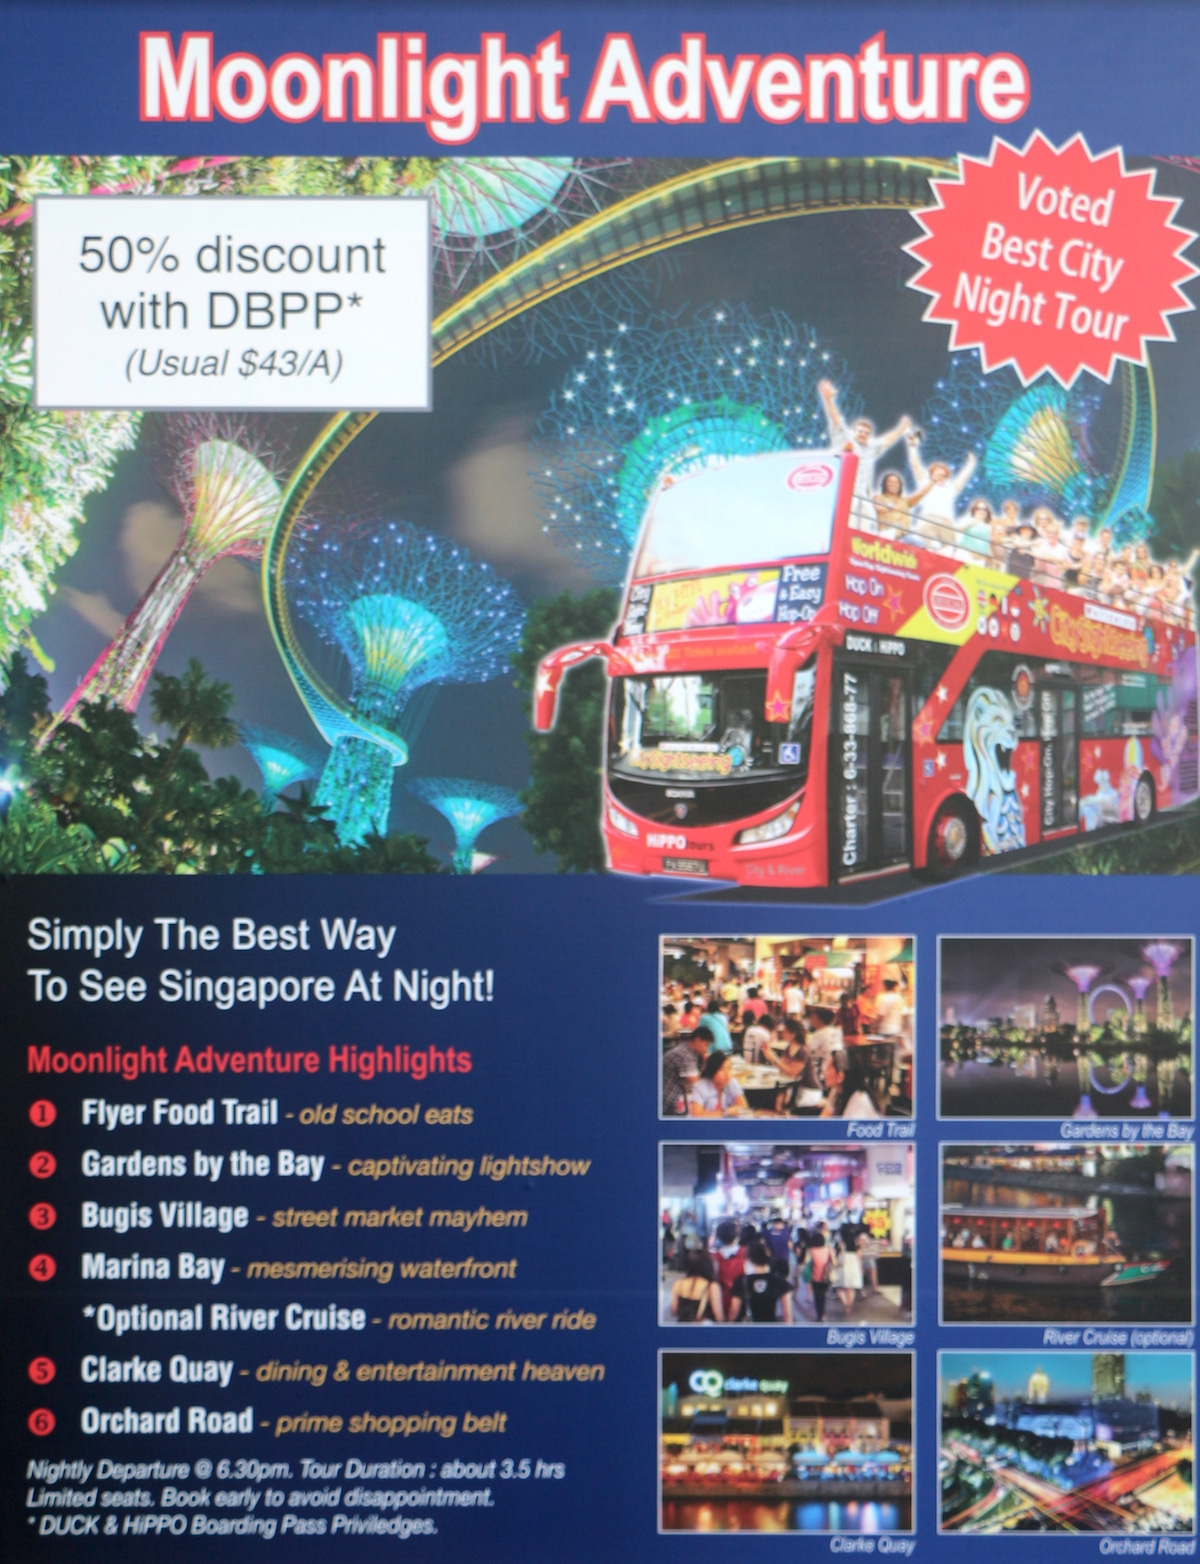 Singapore By Night Retired And Travelling Duck Tour Voucher Hoponhop Off